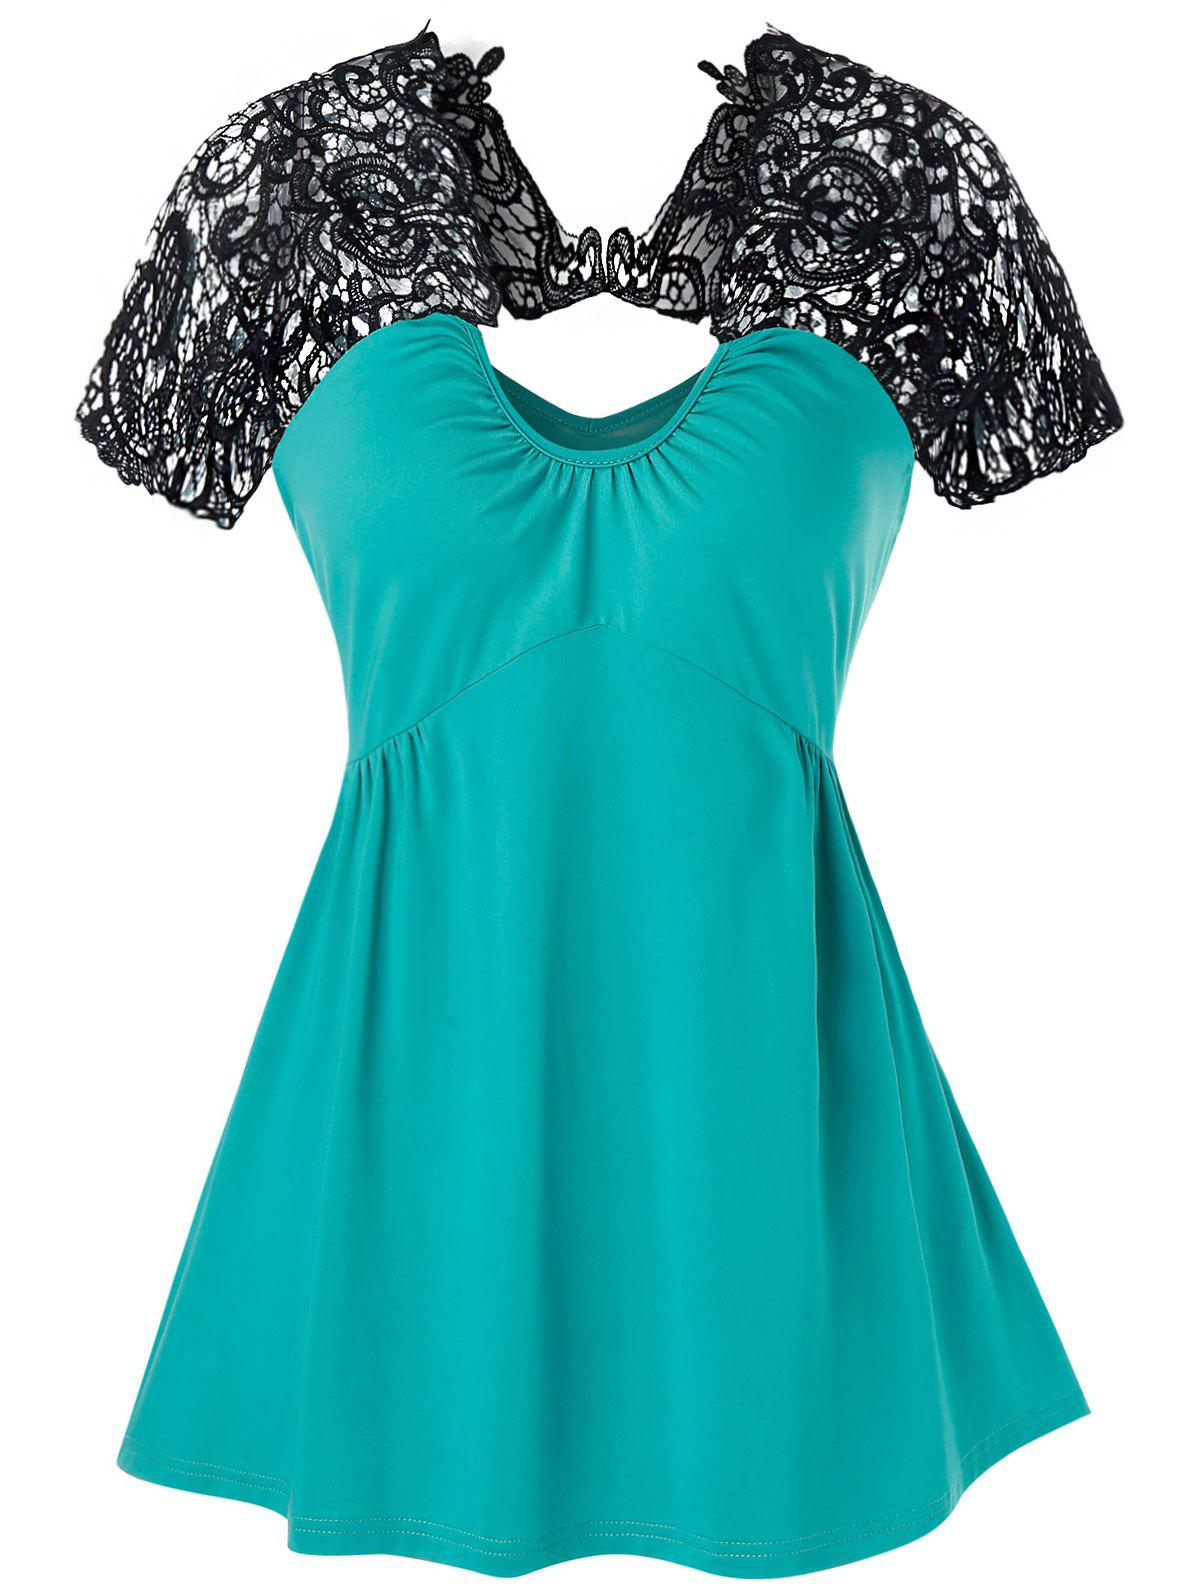 Lace Insert Cut Out Flare Tank Top - TURQUOISE M